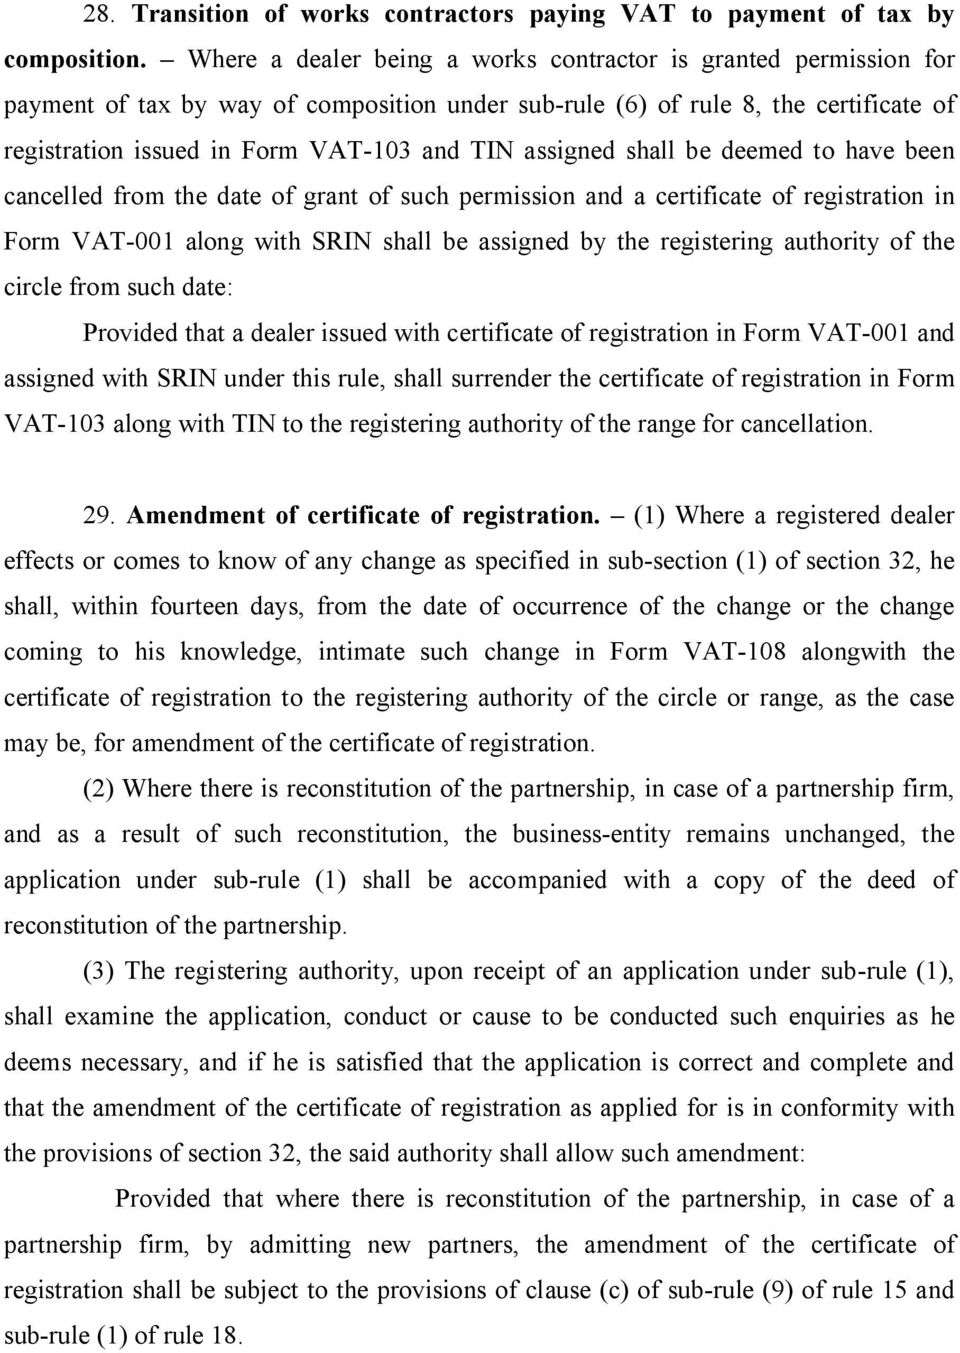 assigned shall be deemed to have been cancelled from the date of grant of such permission and a certificate of registration in Form VAT-001 along with SRIN shall be assigned by the registering